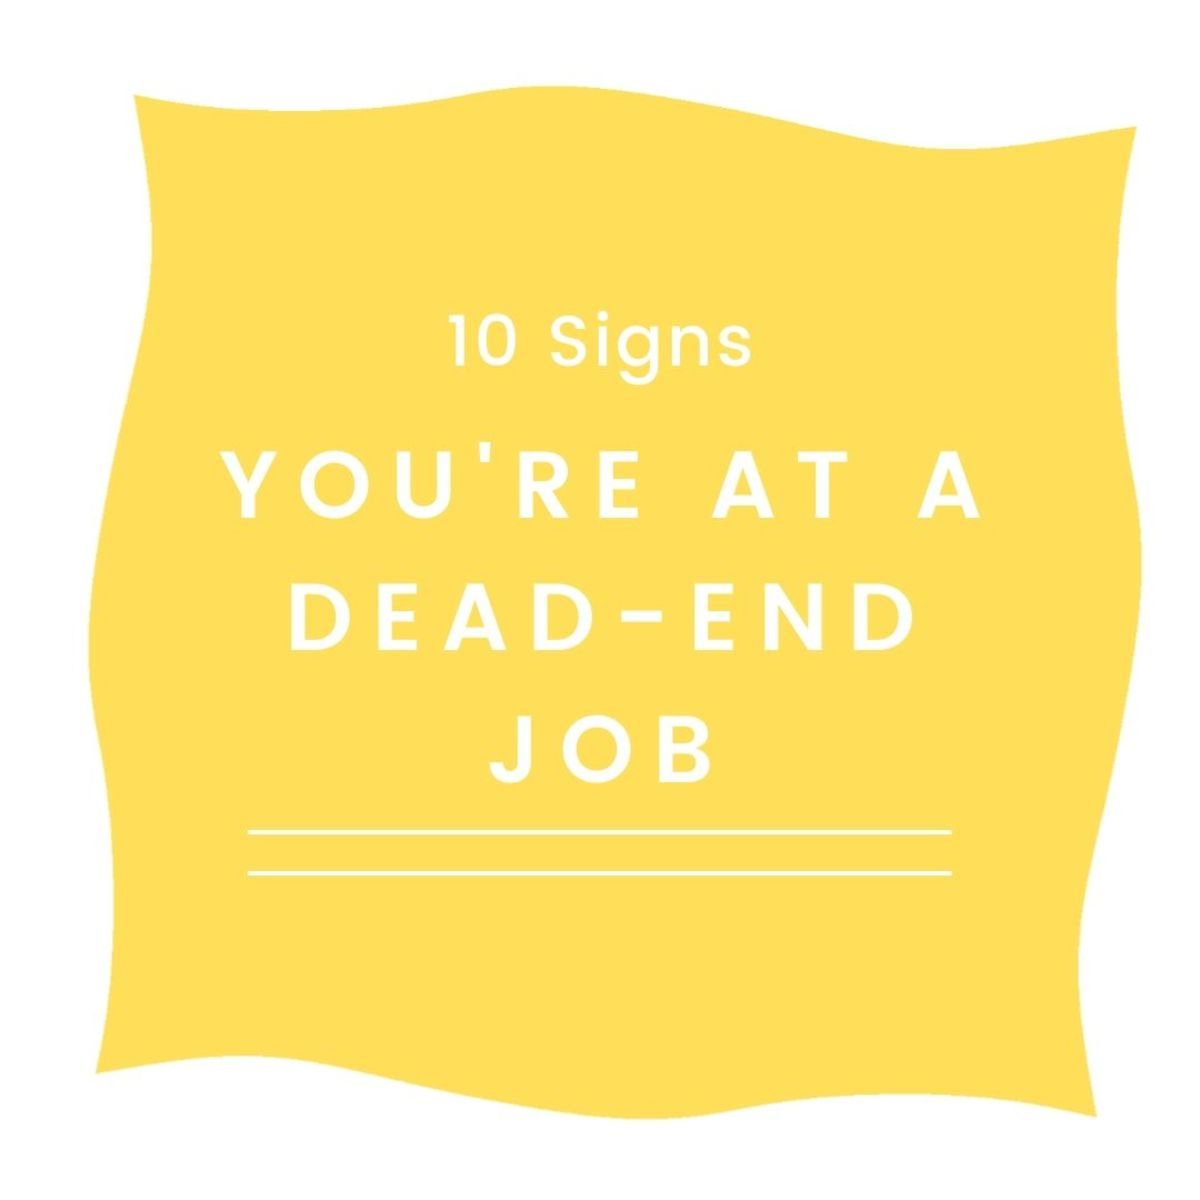 Are you at a dead-end job? Read on to find out!